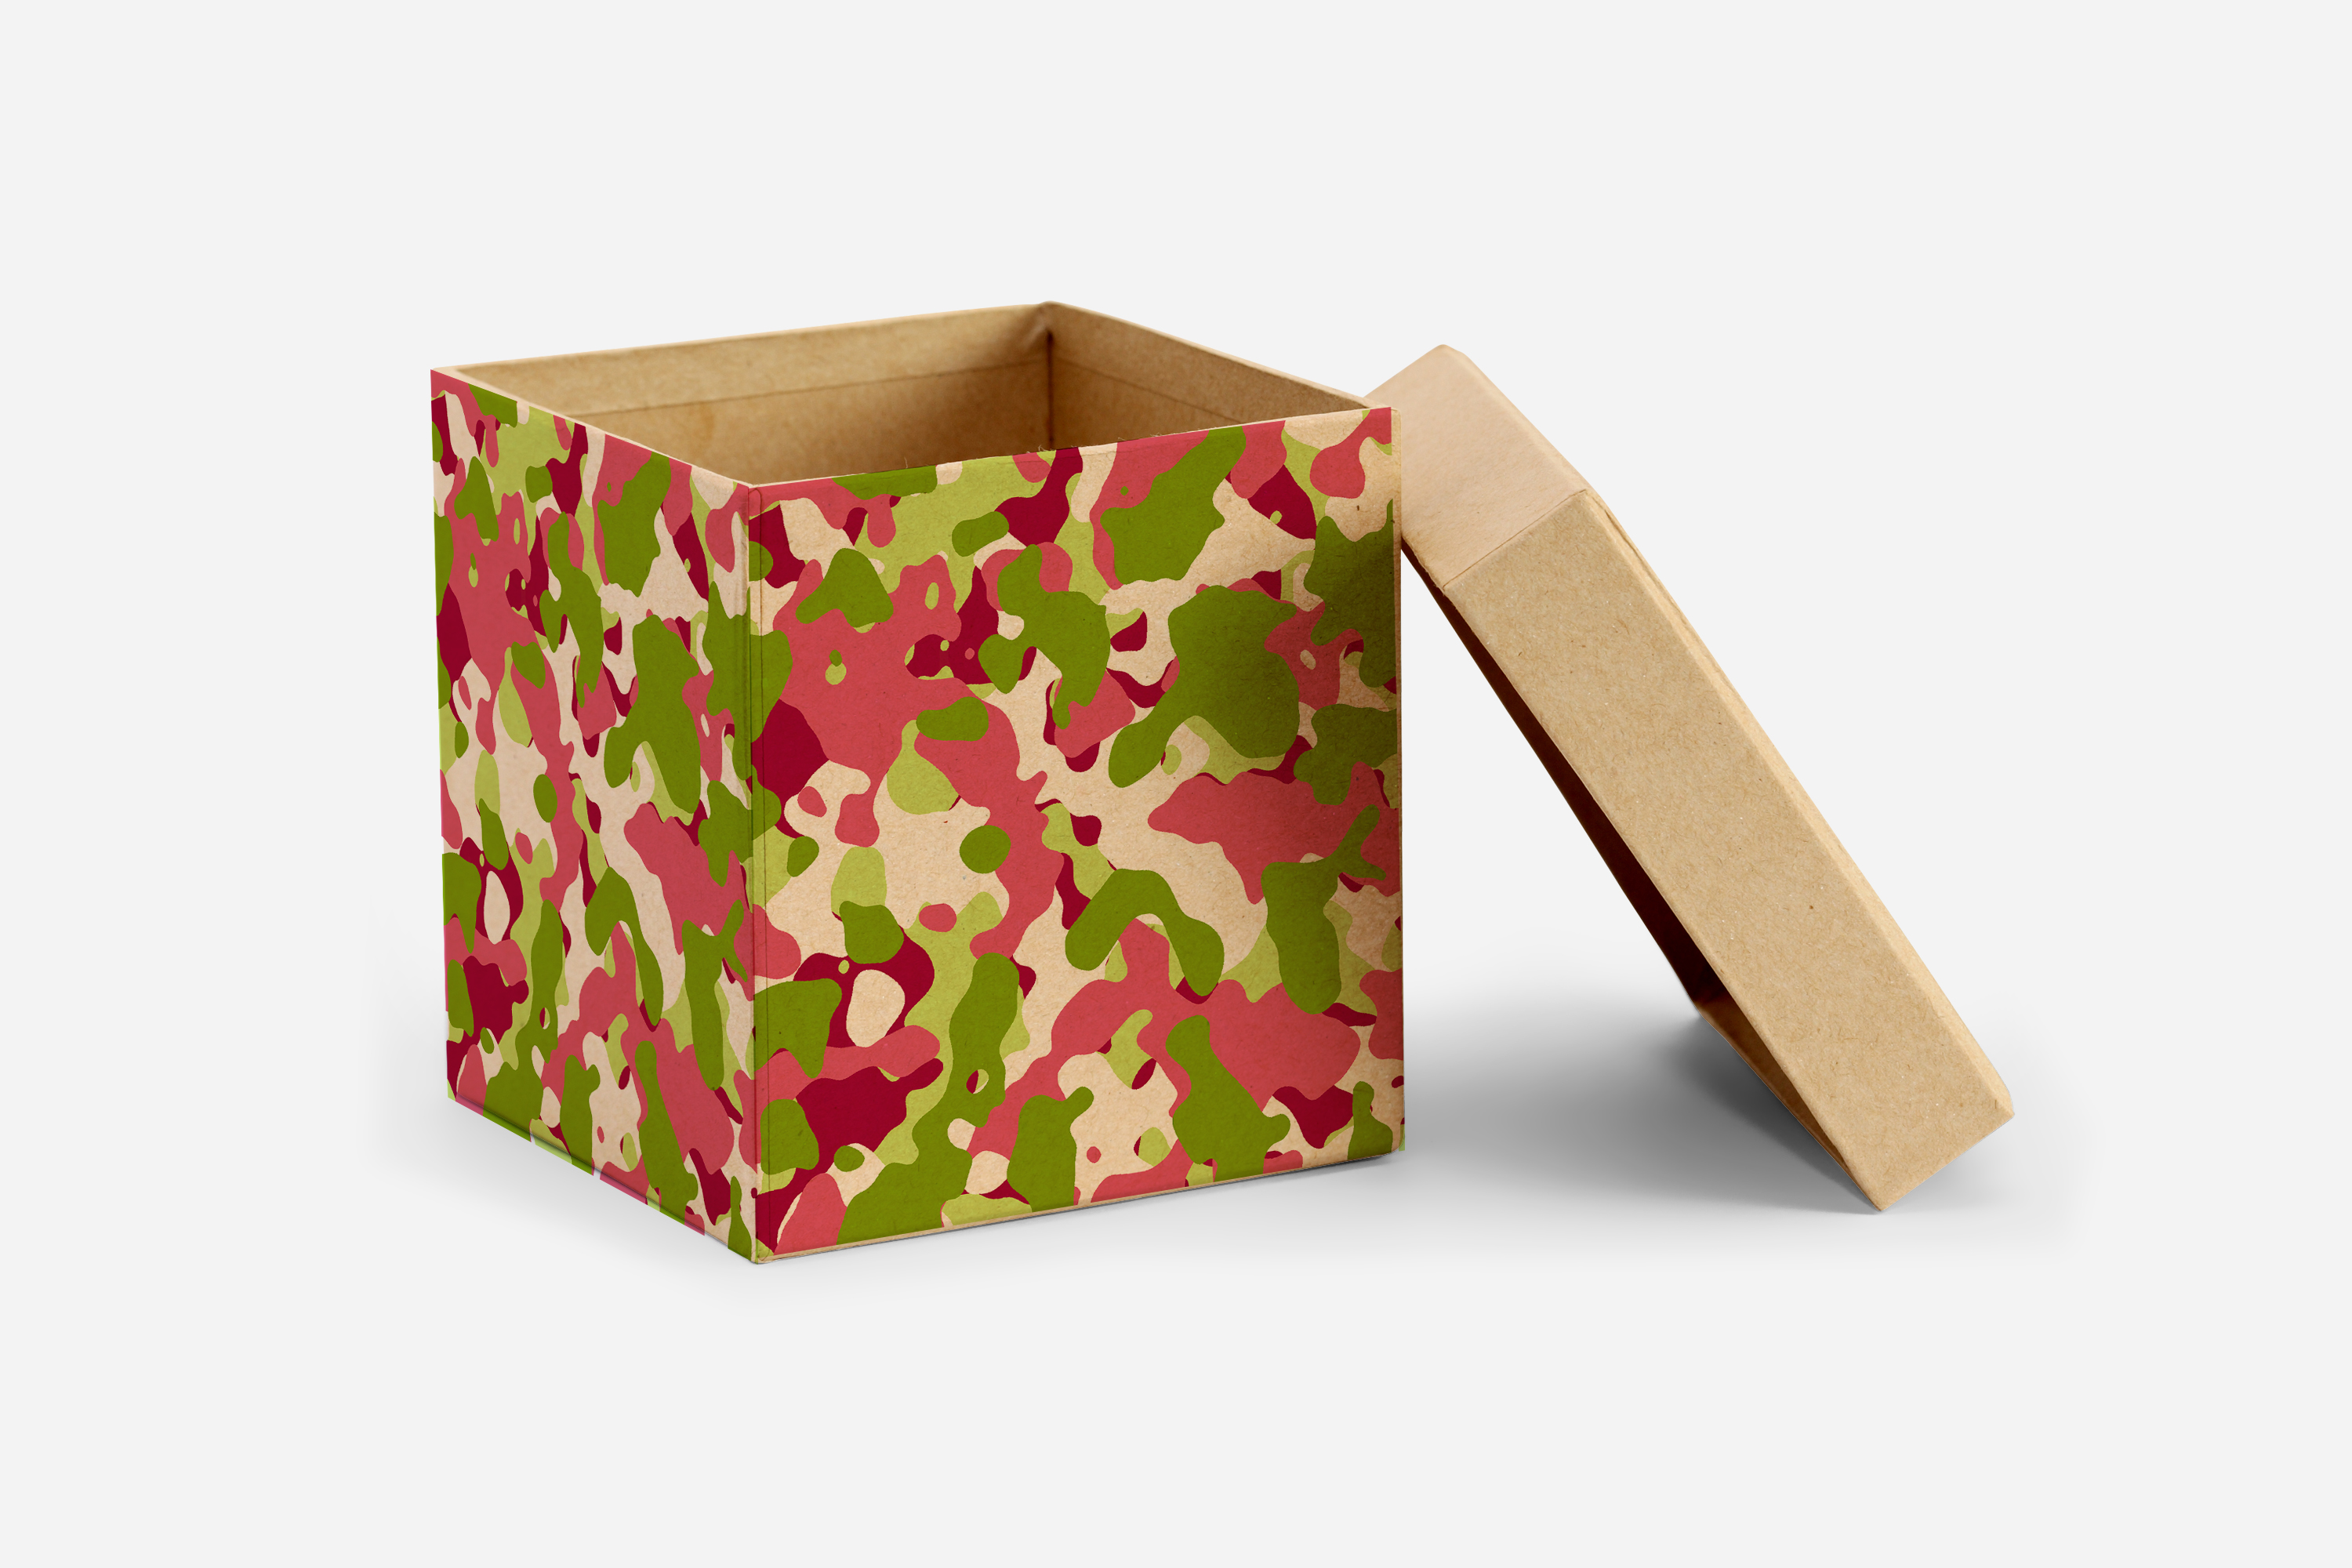 40 Alternative Camouflage Paper Designs example image 11